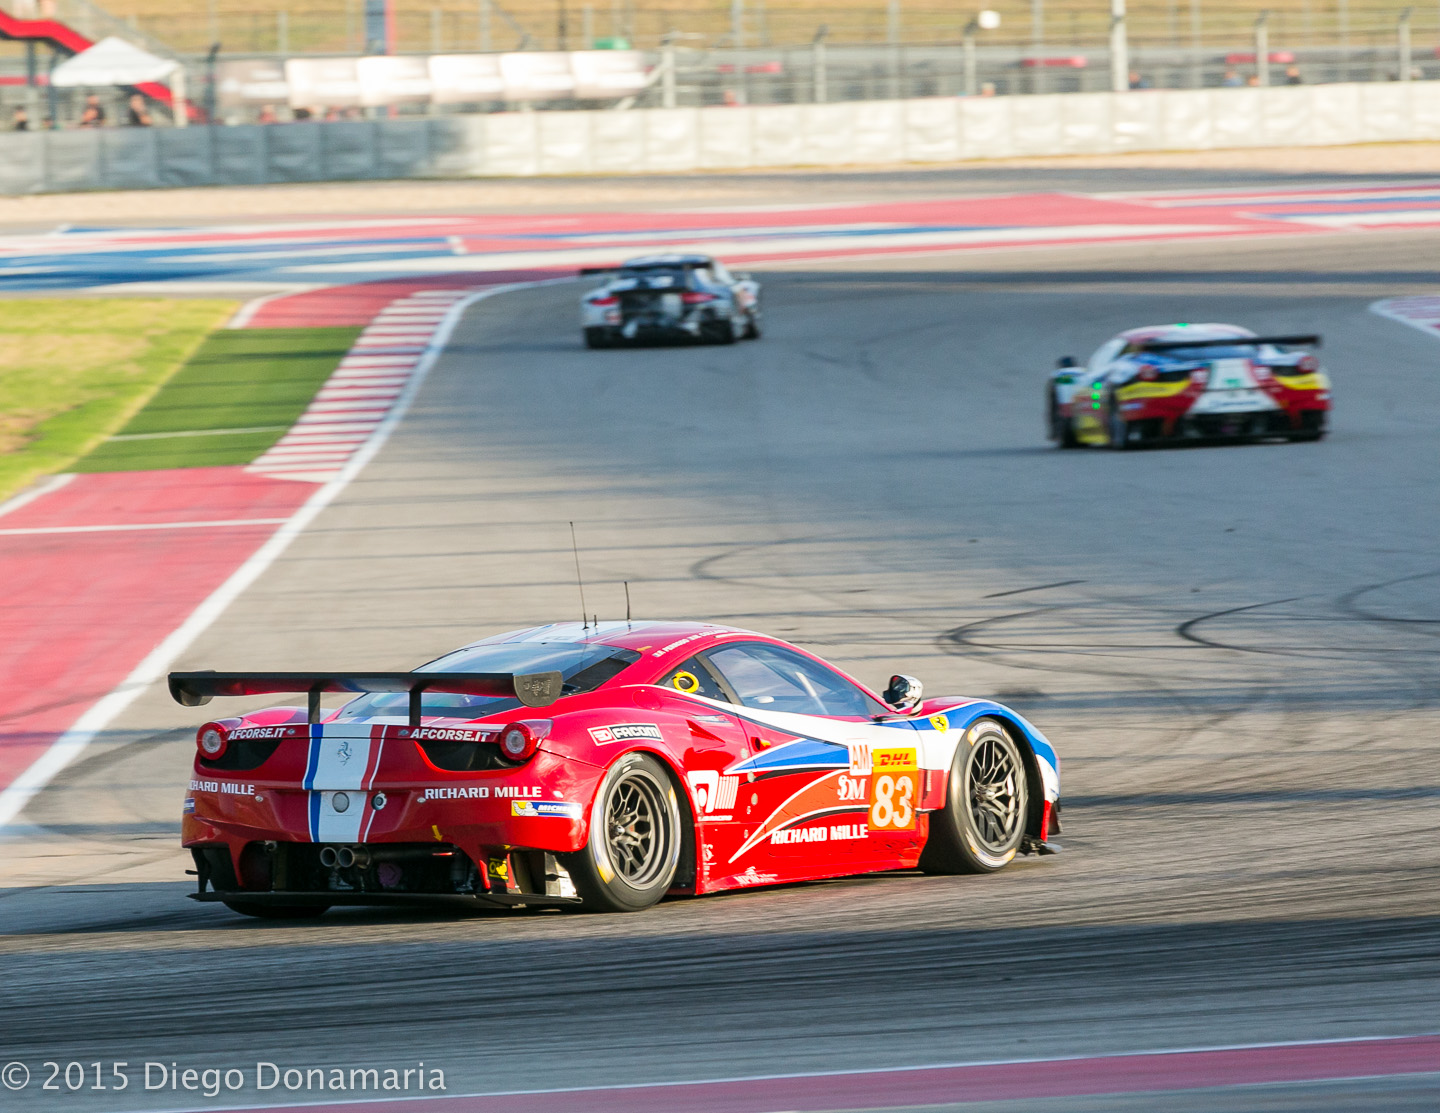 2015 Lone Star Le Mans - Circuit of the Americas - Through